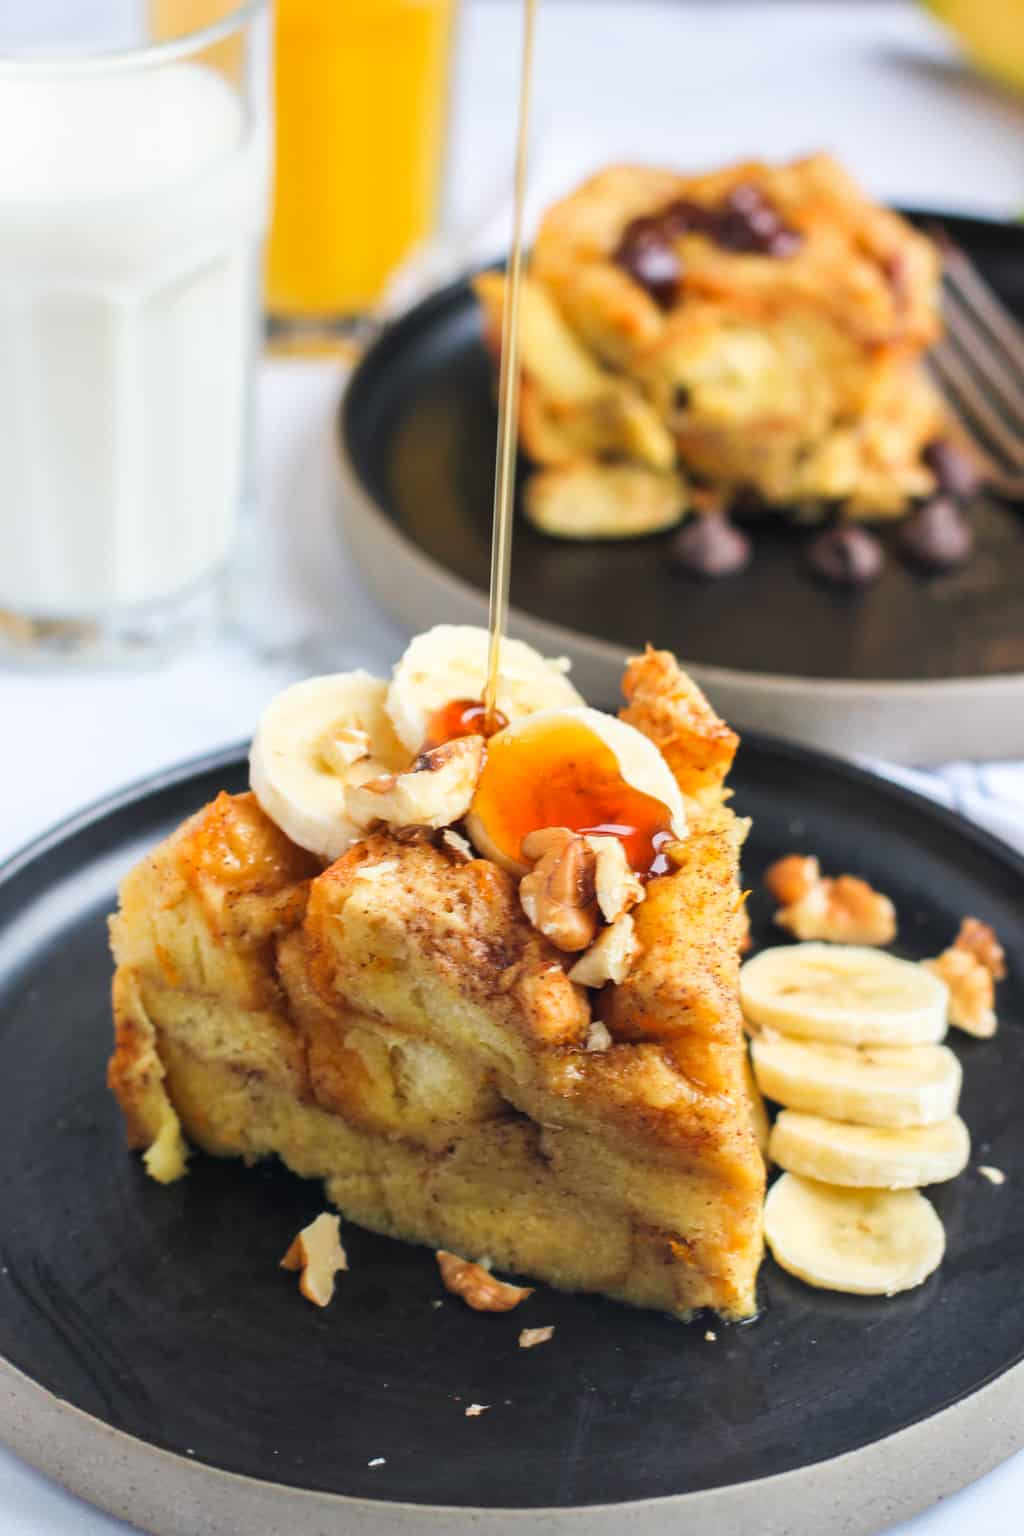 french toast bread pudding with bananas and maple syrup